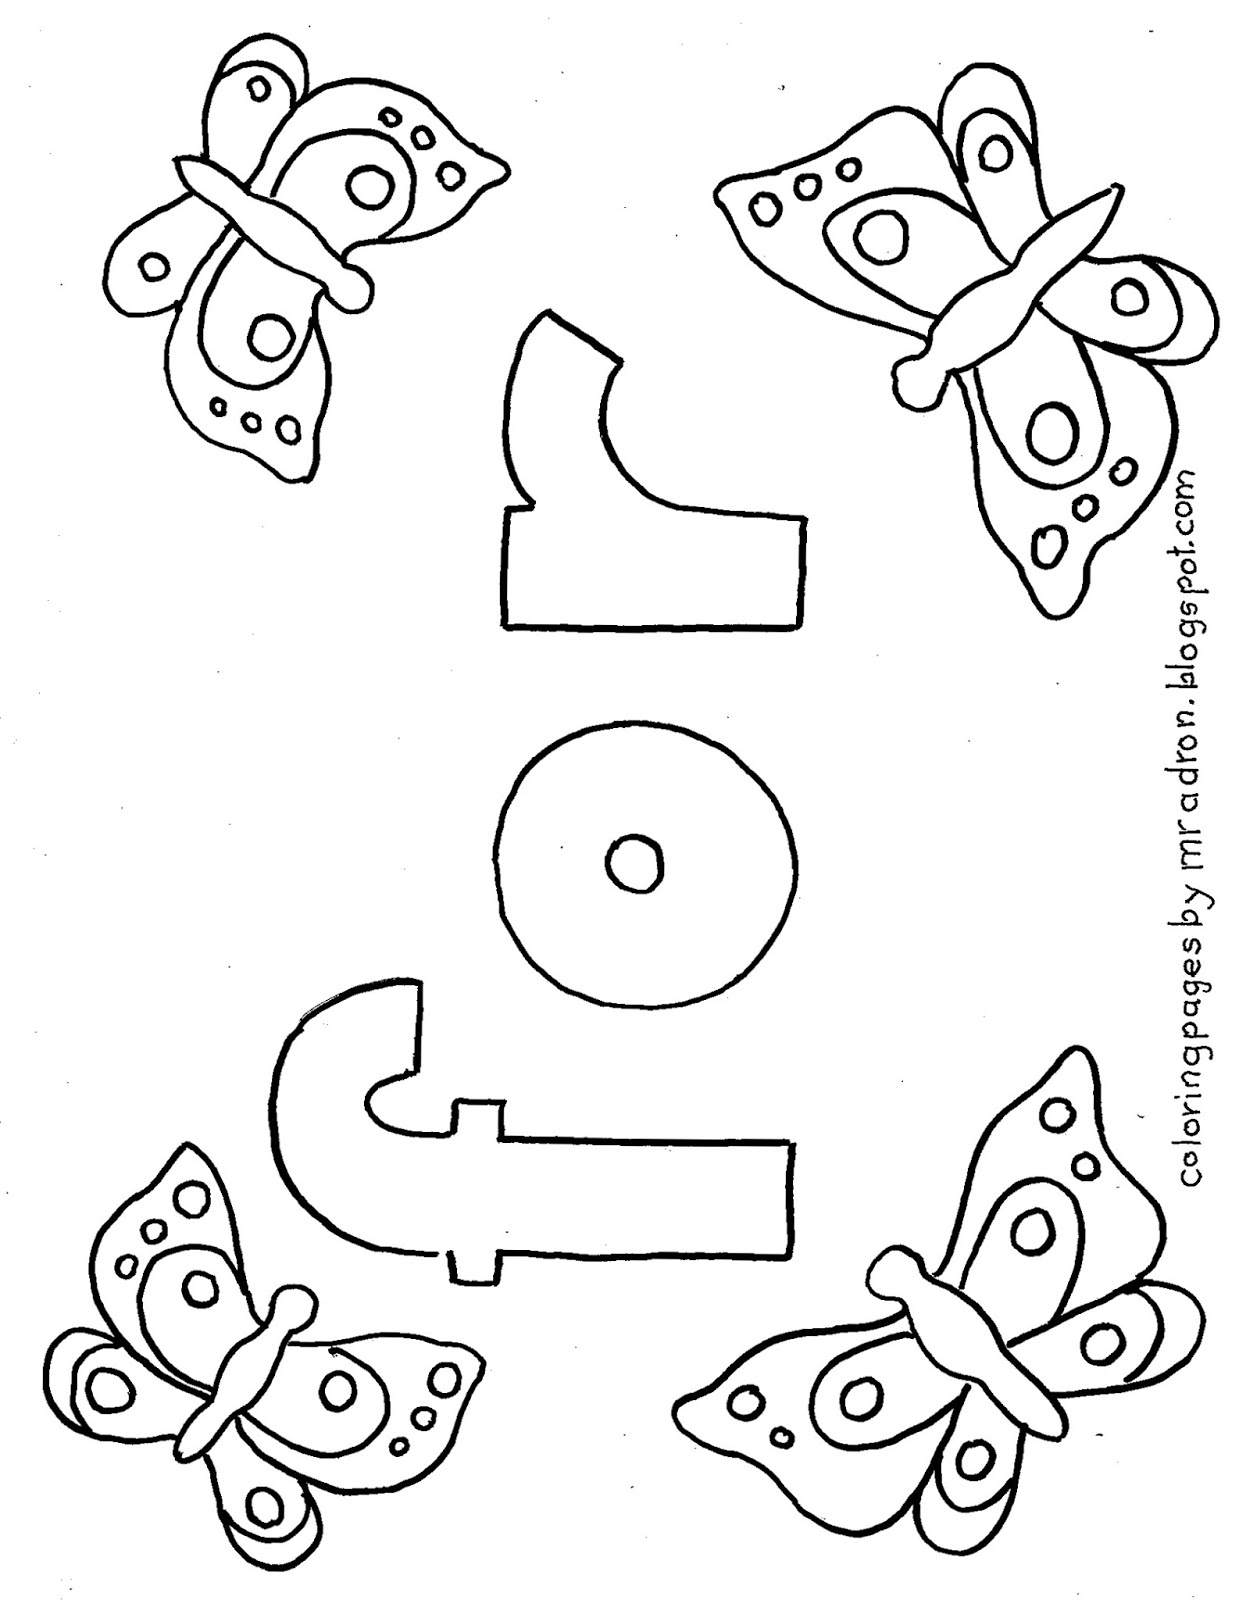 Coloring Pages For Kids By Mr Adron Printable Coloring Page For A Sight Word